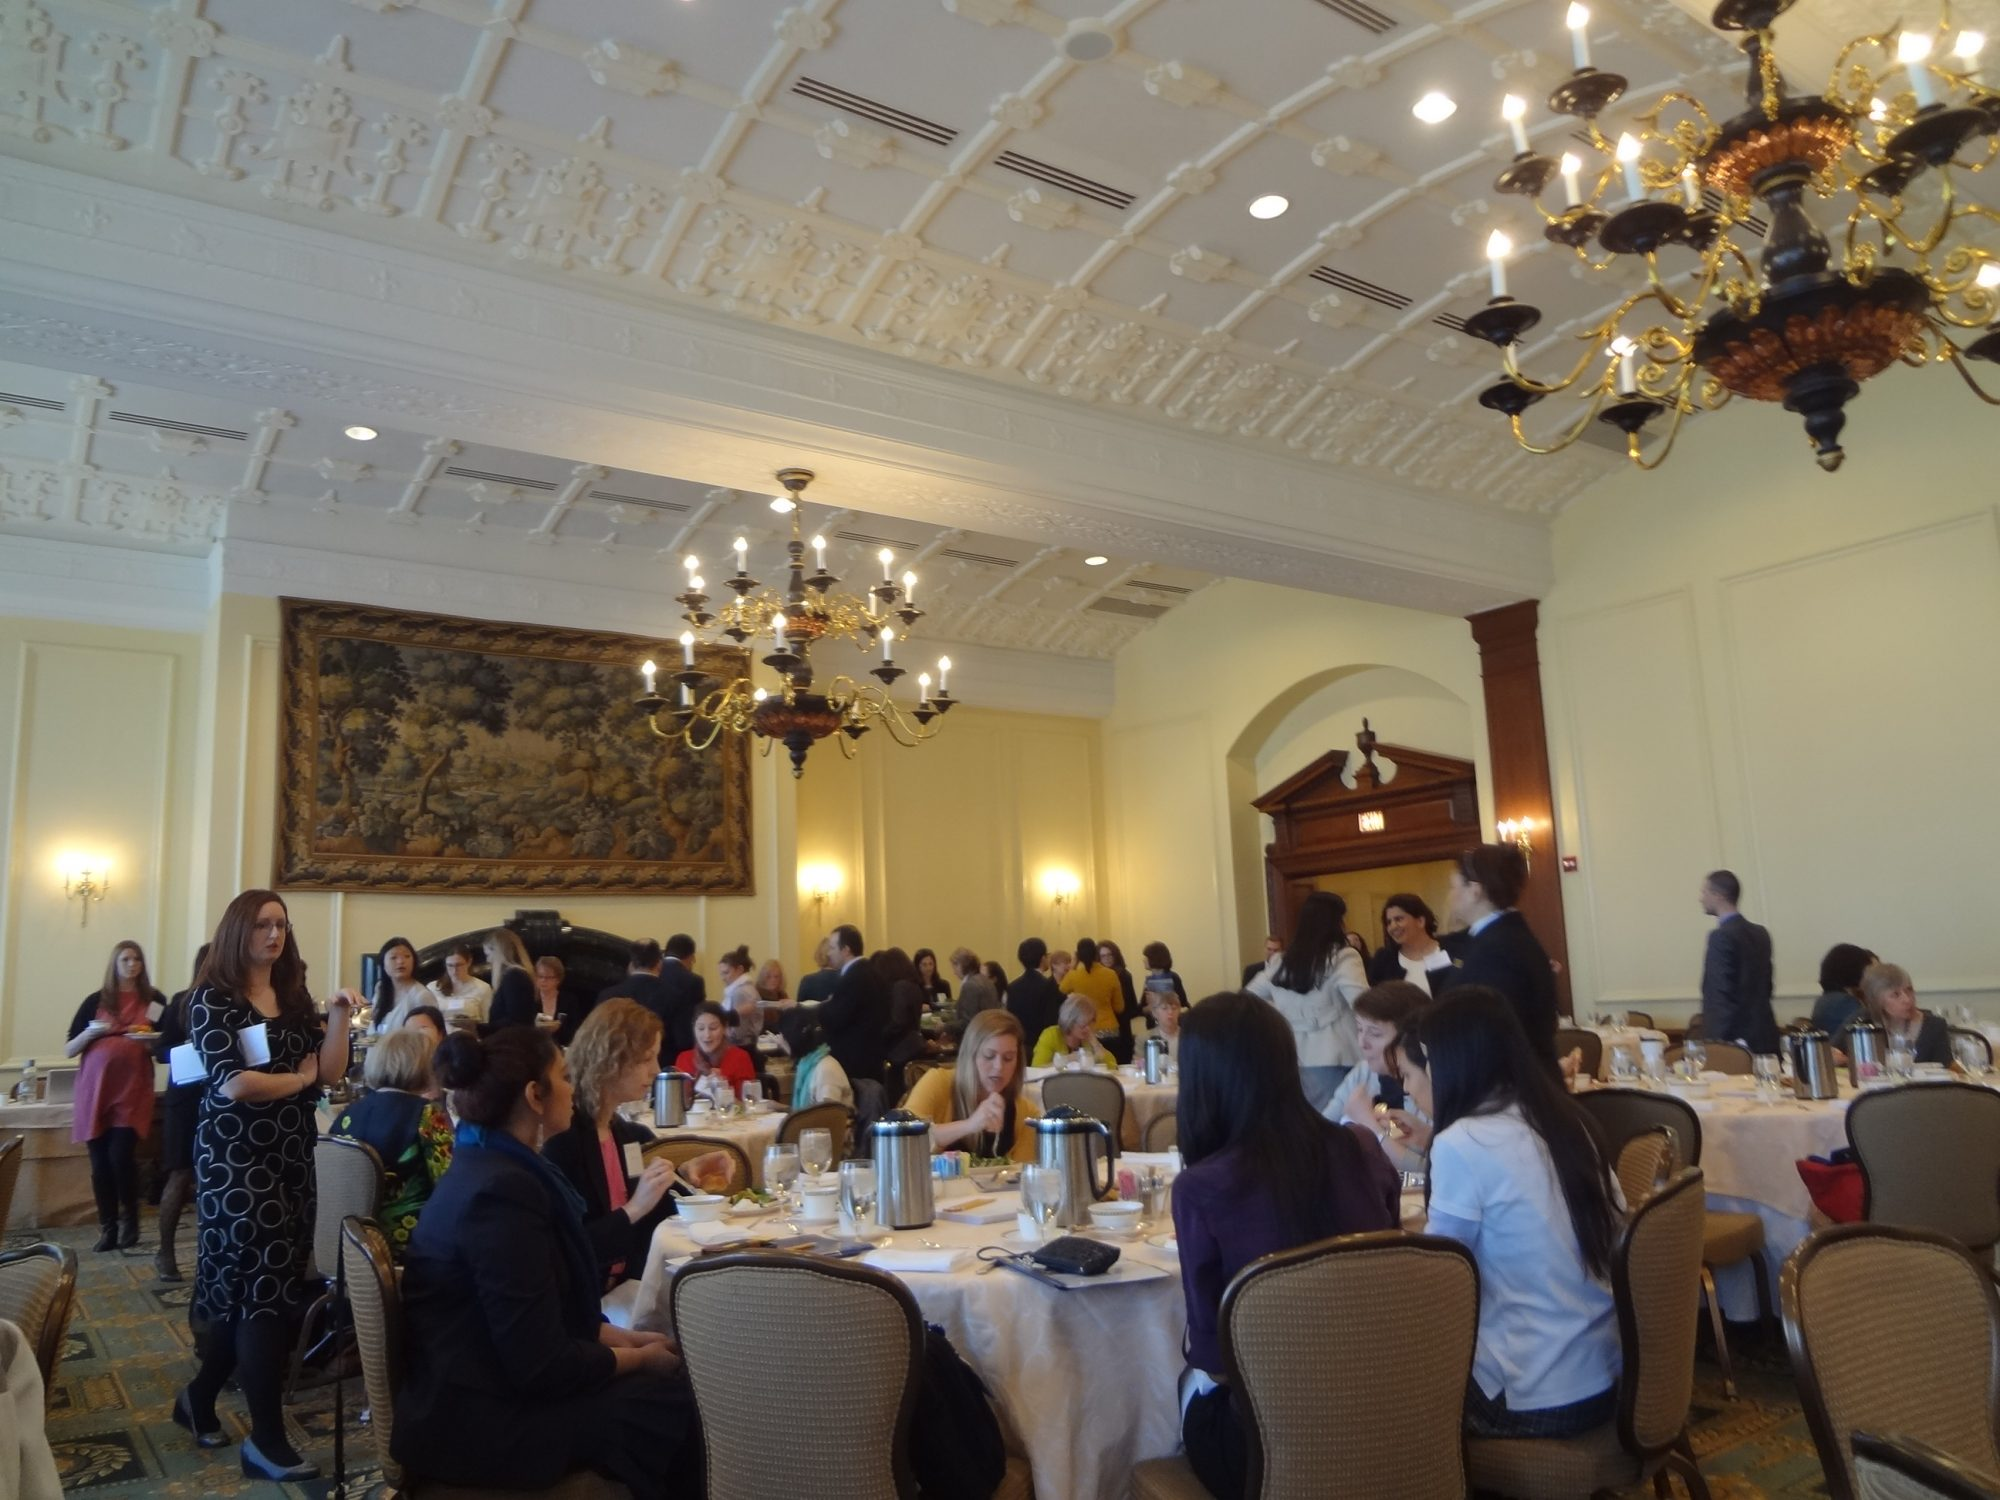 Attendees gather for the Chicago Council on Global Affairs' International Women's Day Women in Global Health Symposium